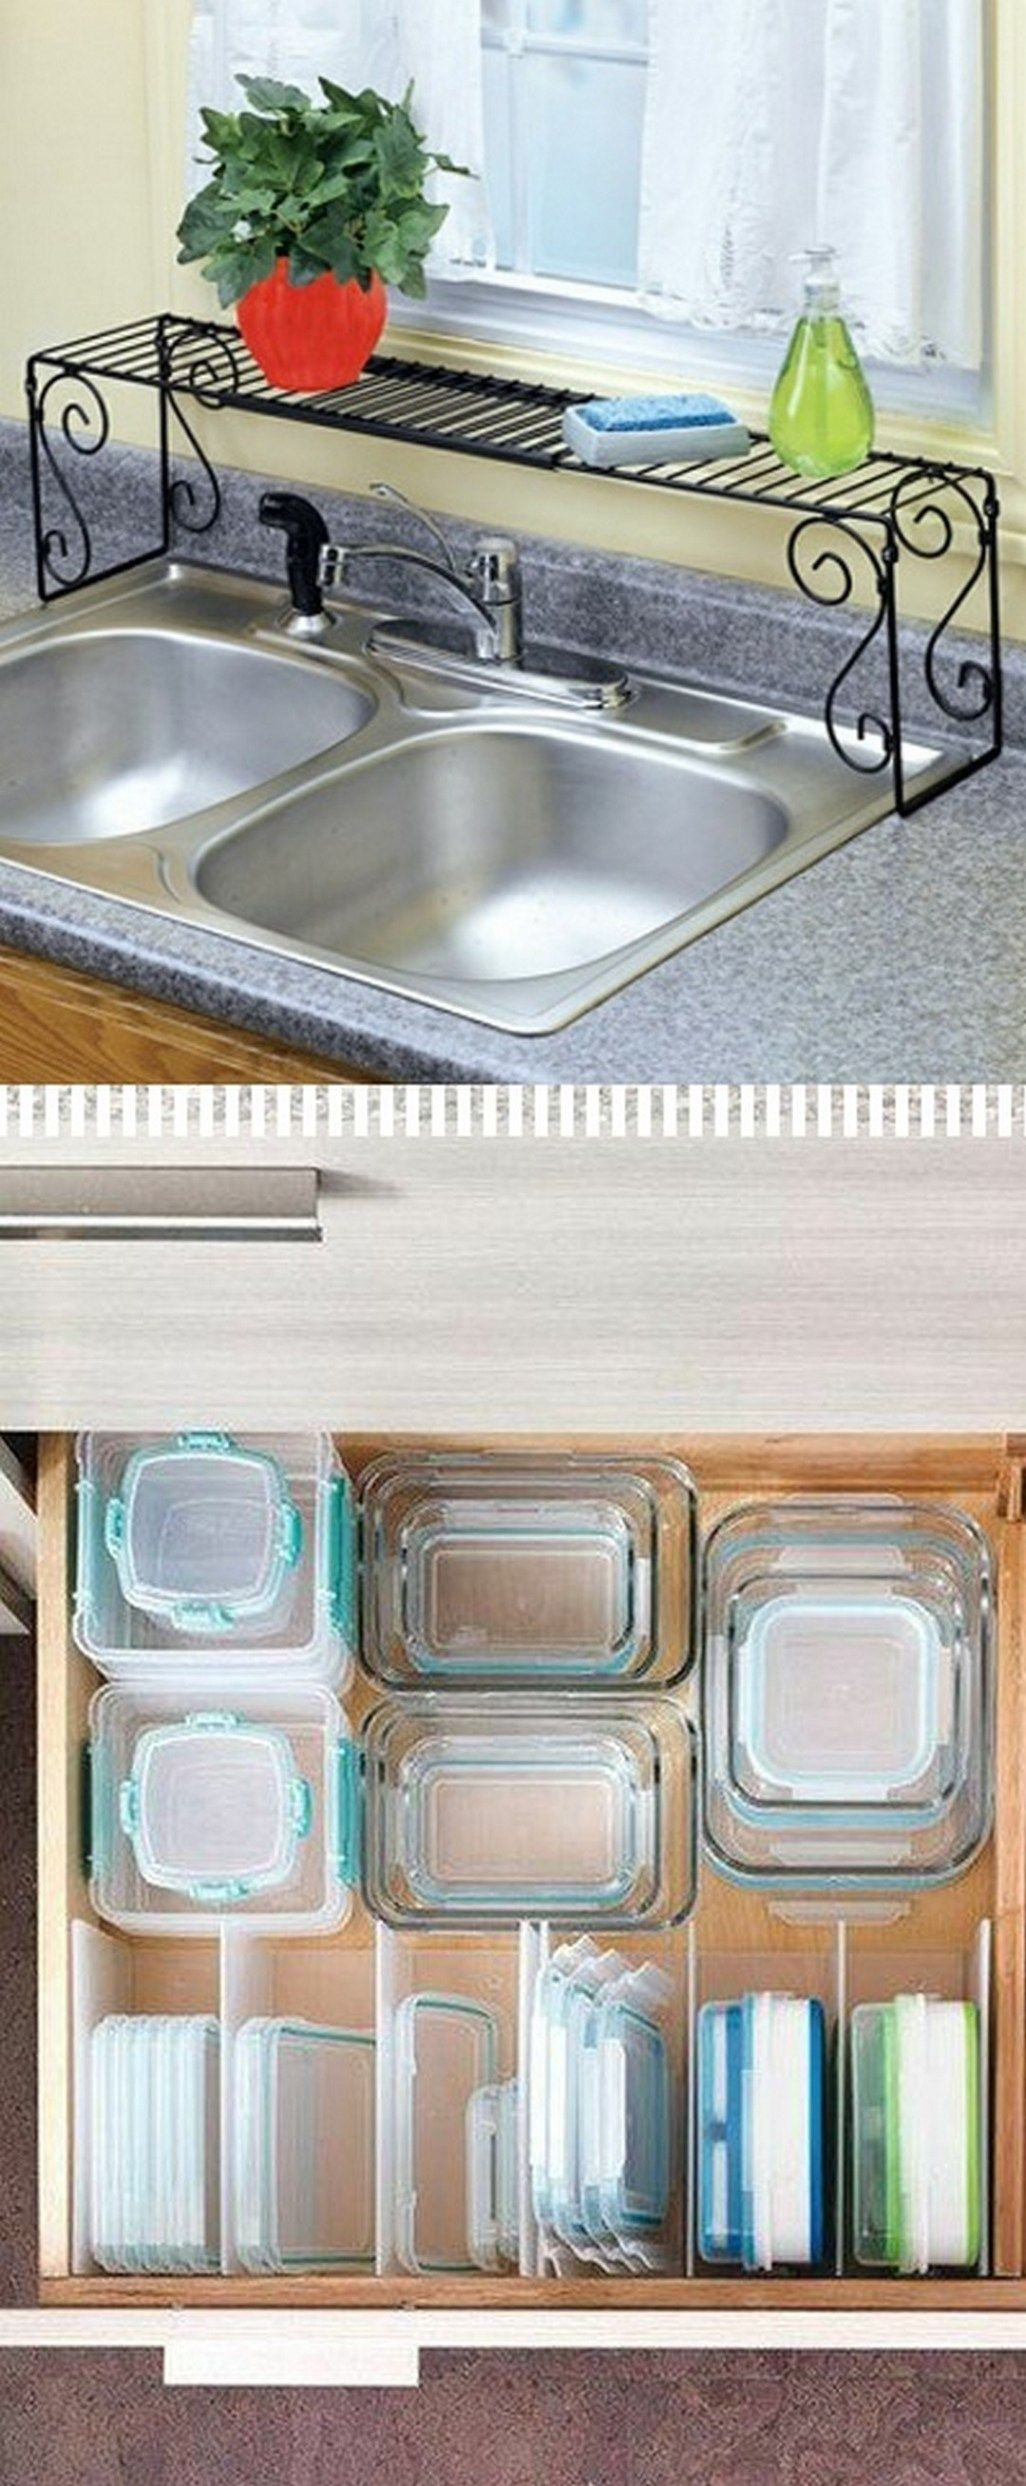 20 DIY Kitchen Organization And Storage Hacks Ideas (10